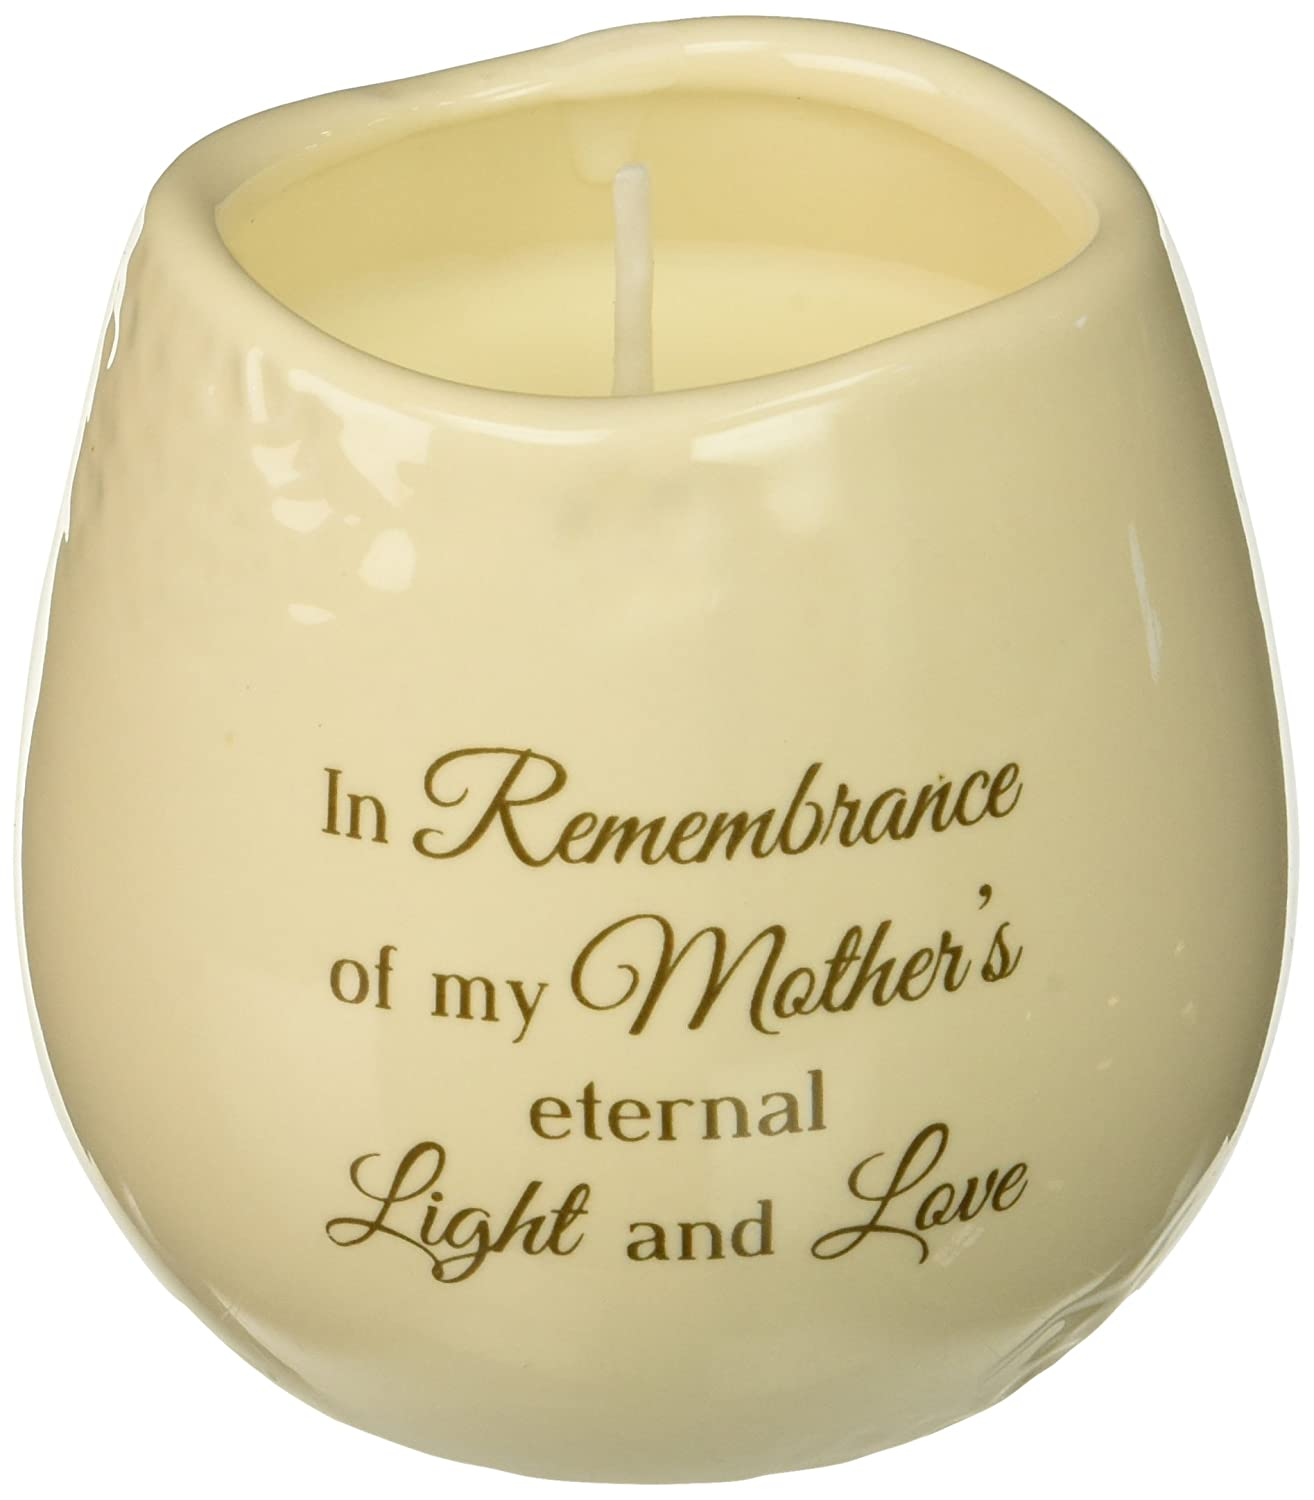 Light Your Way Memorial 19179 Mother Ceramic Soy Wax Candle Pavilion Gift Company